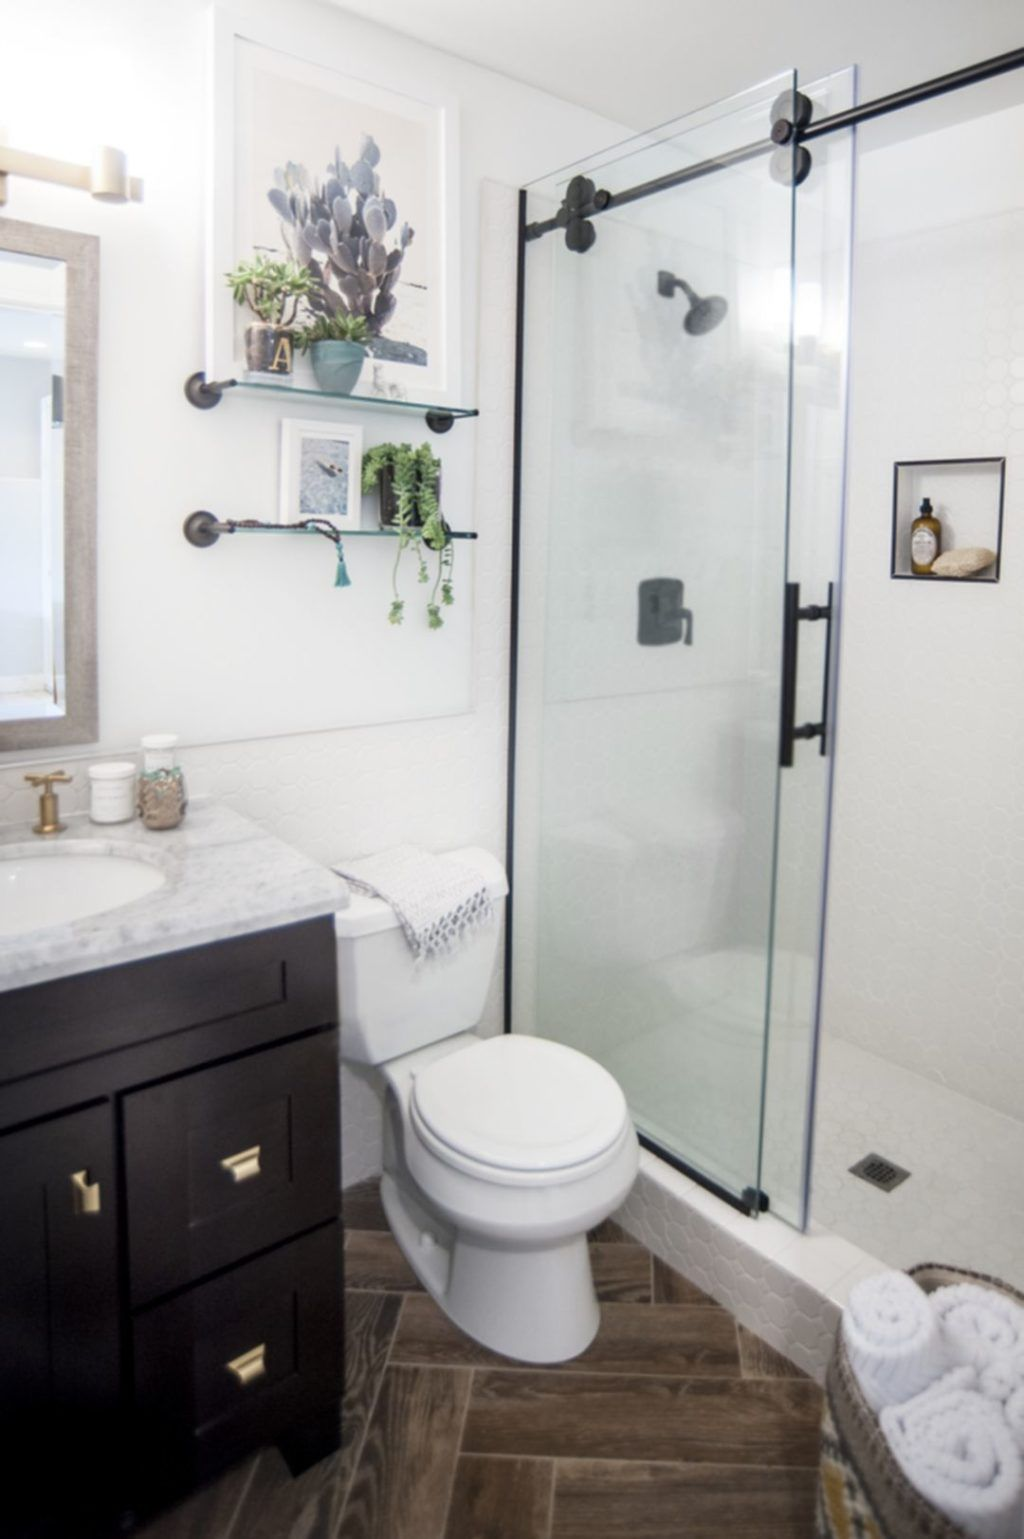 30 Cool Bathroom Shower Design Ideas in 2020 (With images ...